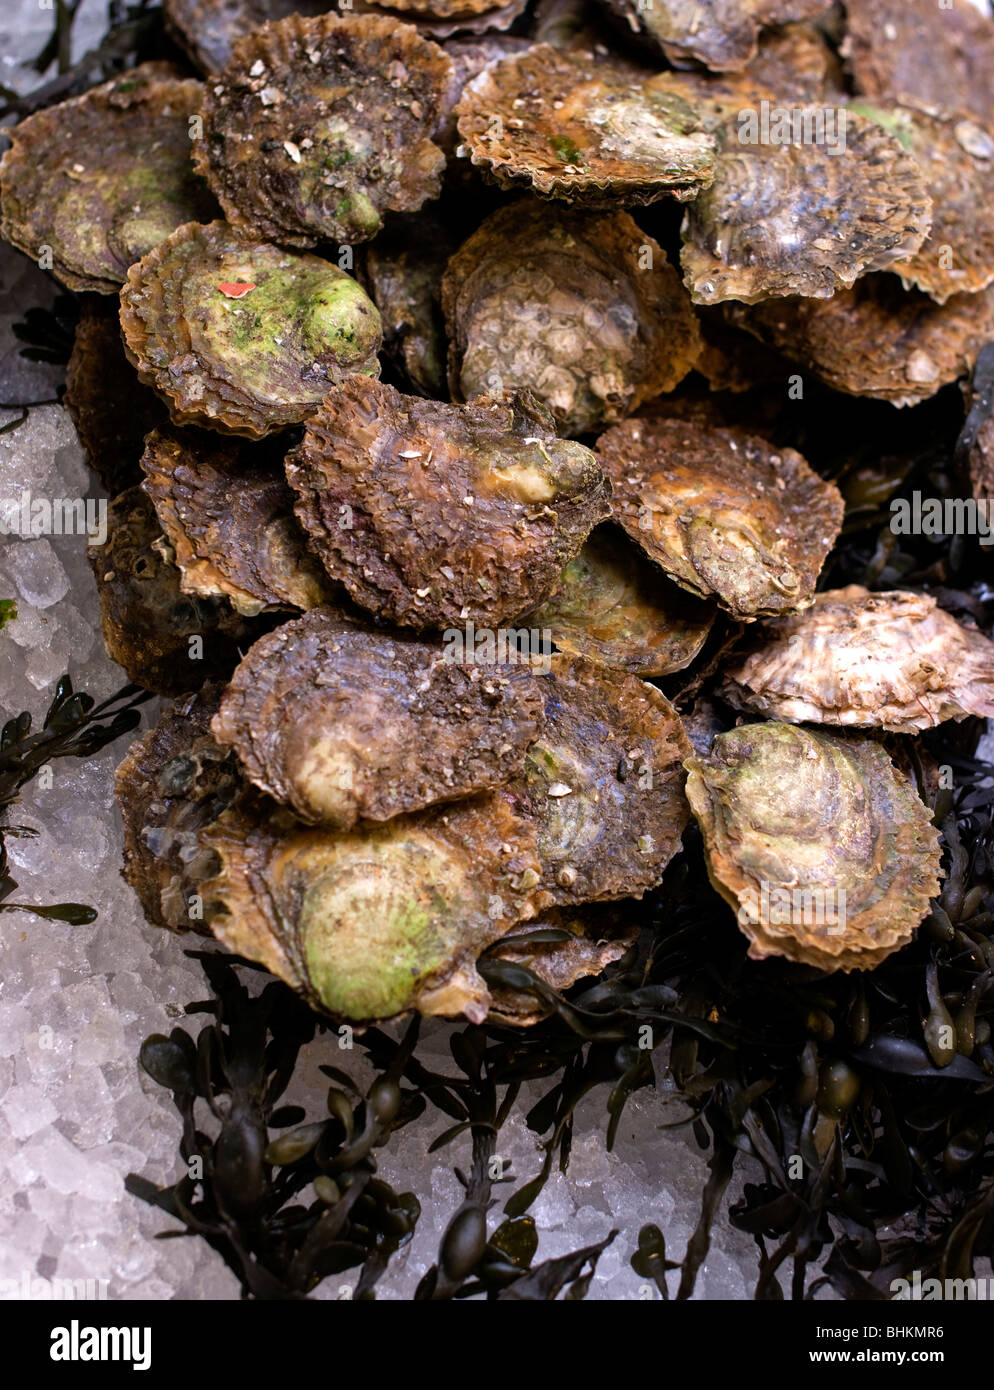 Oysters - Stock Image